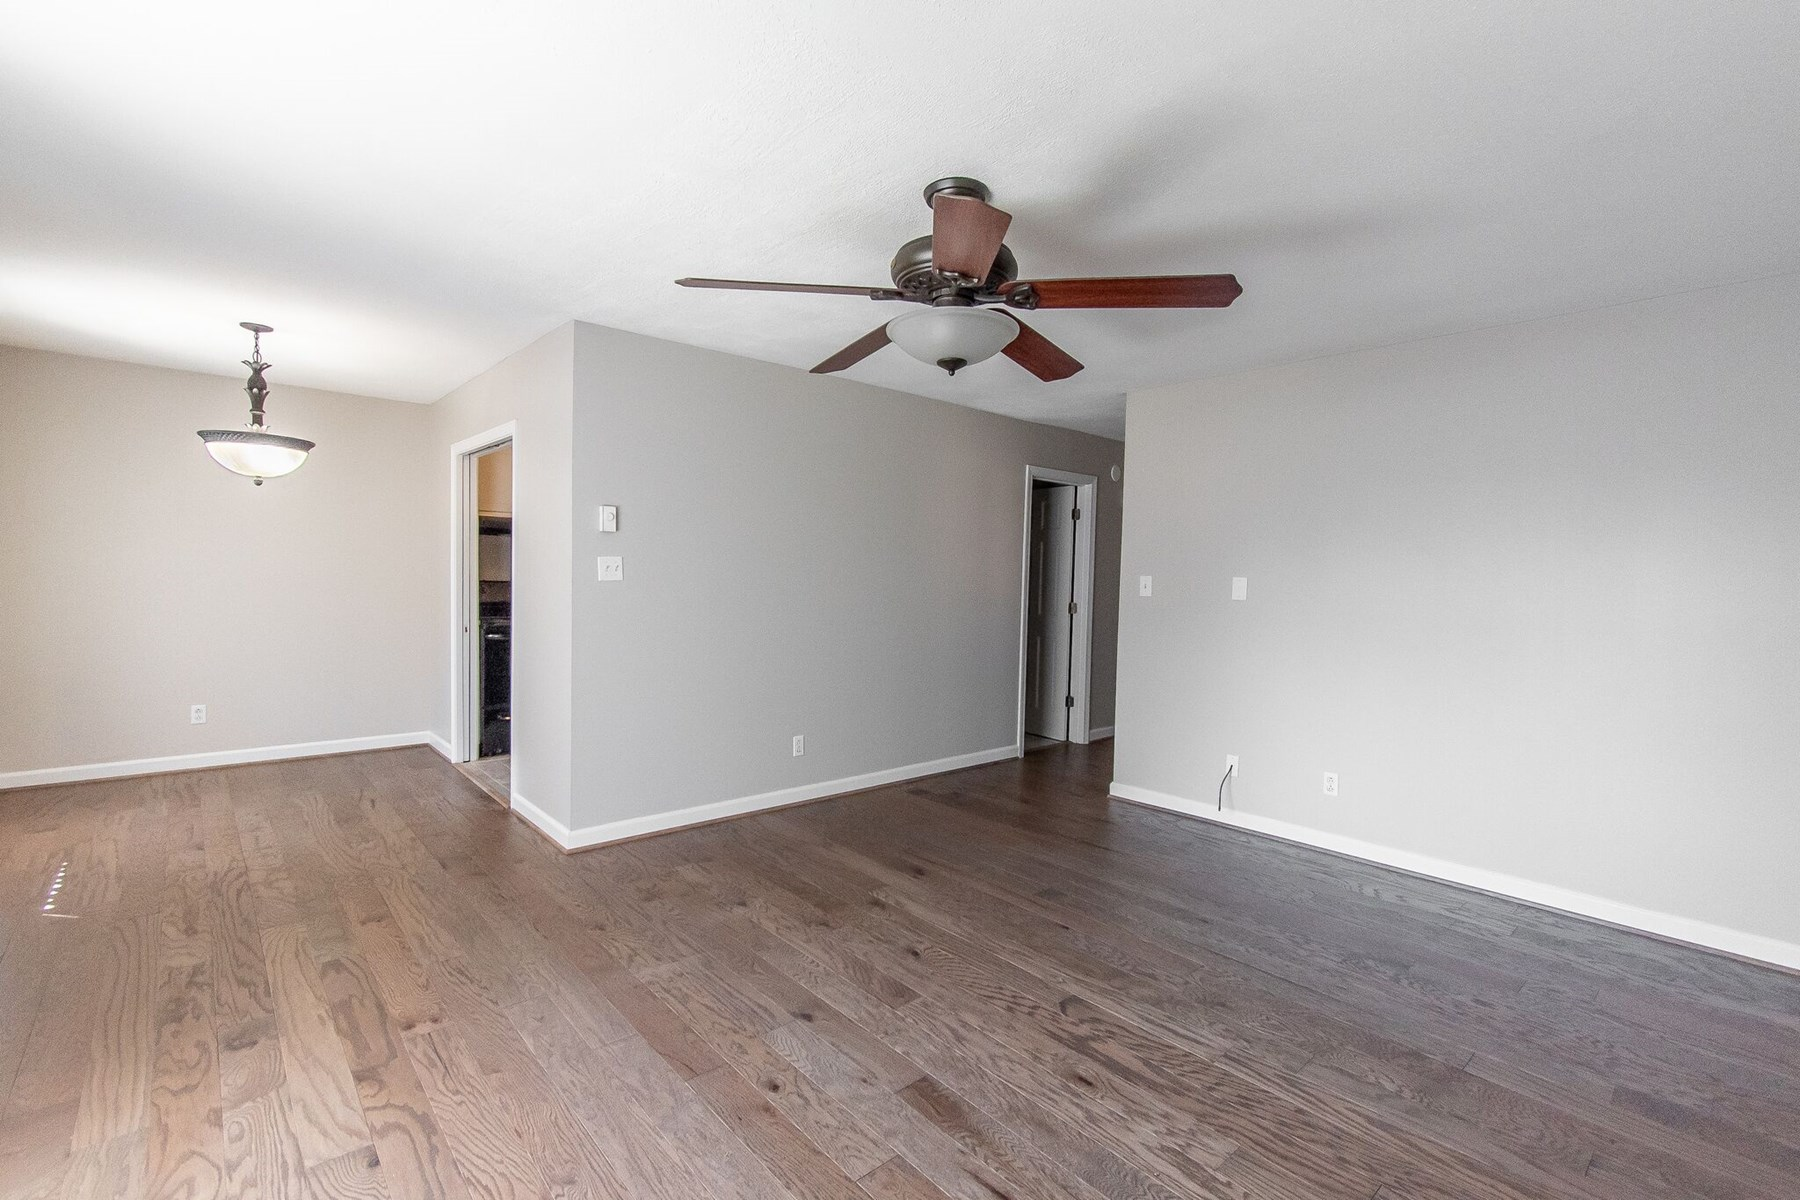 Condo for sale in Mount Airy